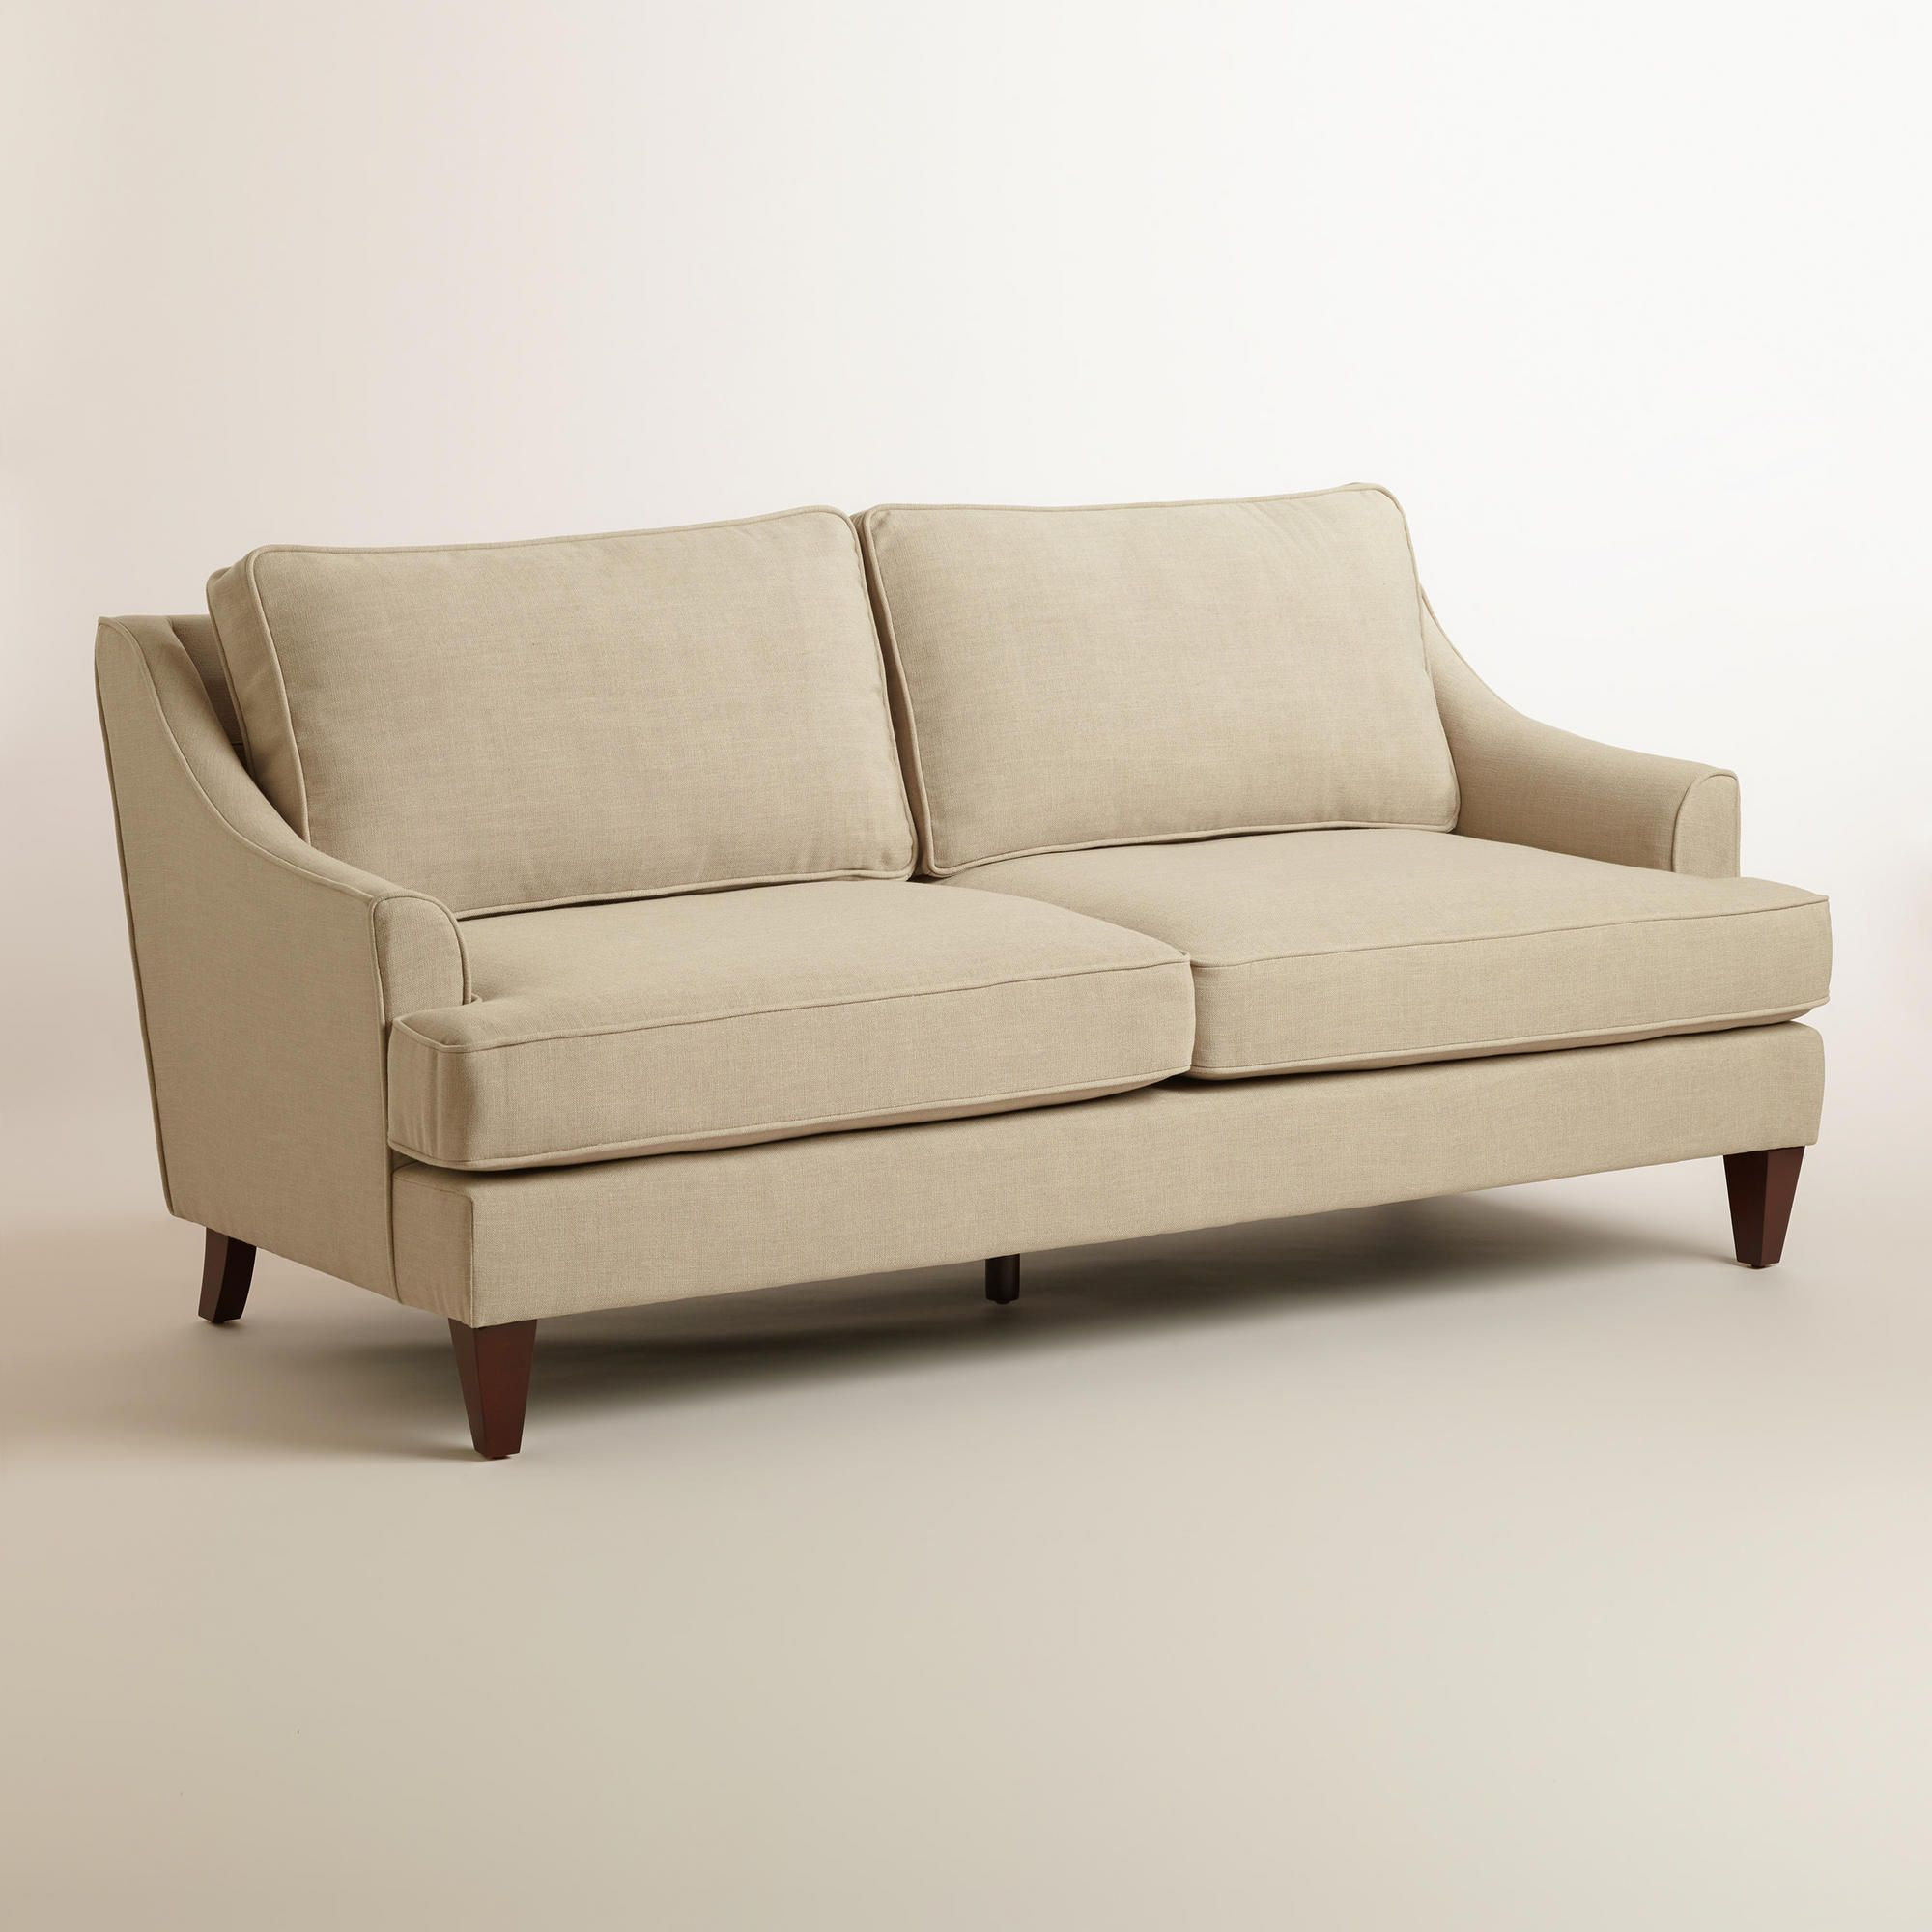 Straw Ellis Sofa World Market 749 99 Two Of These Facing A Farmhouse Table